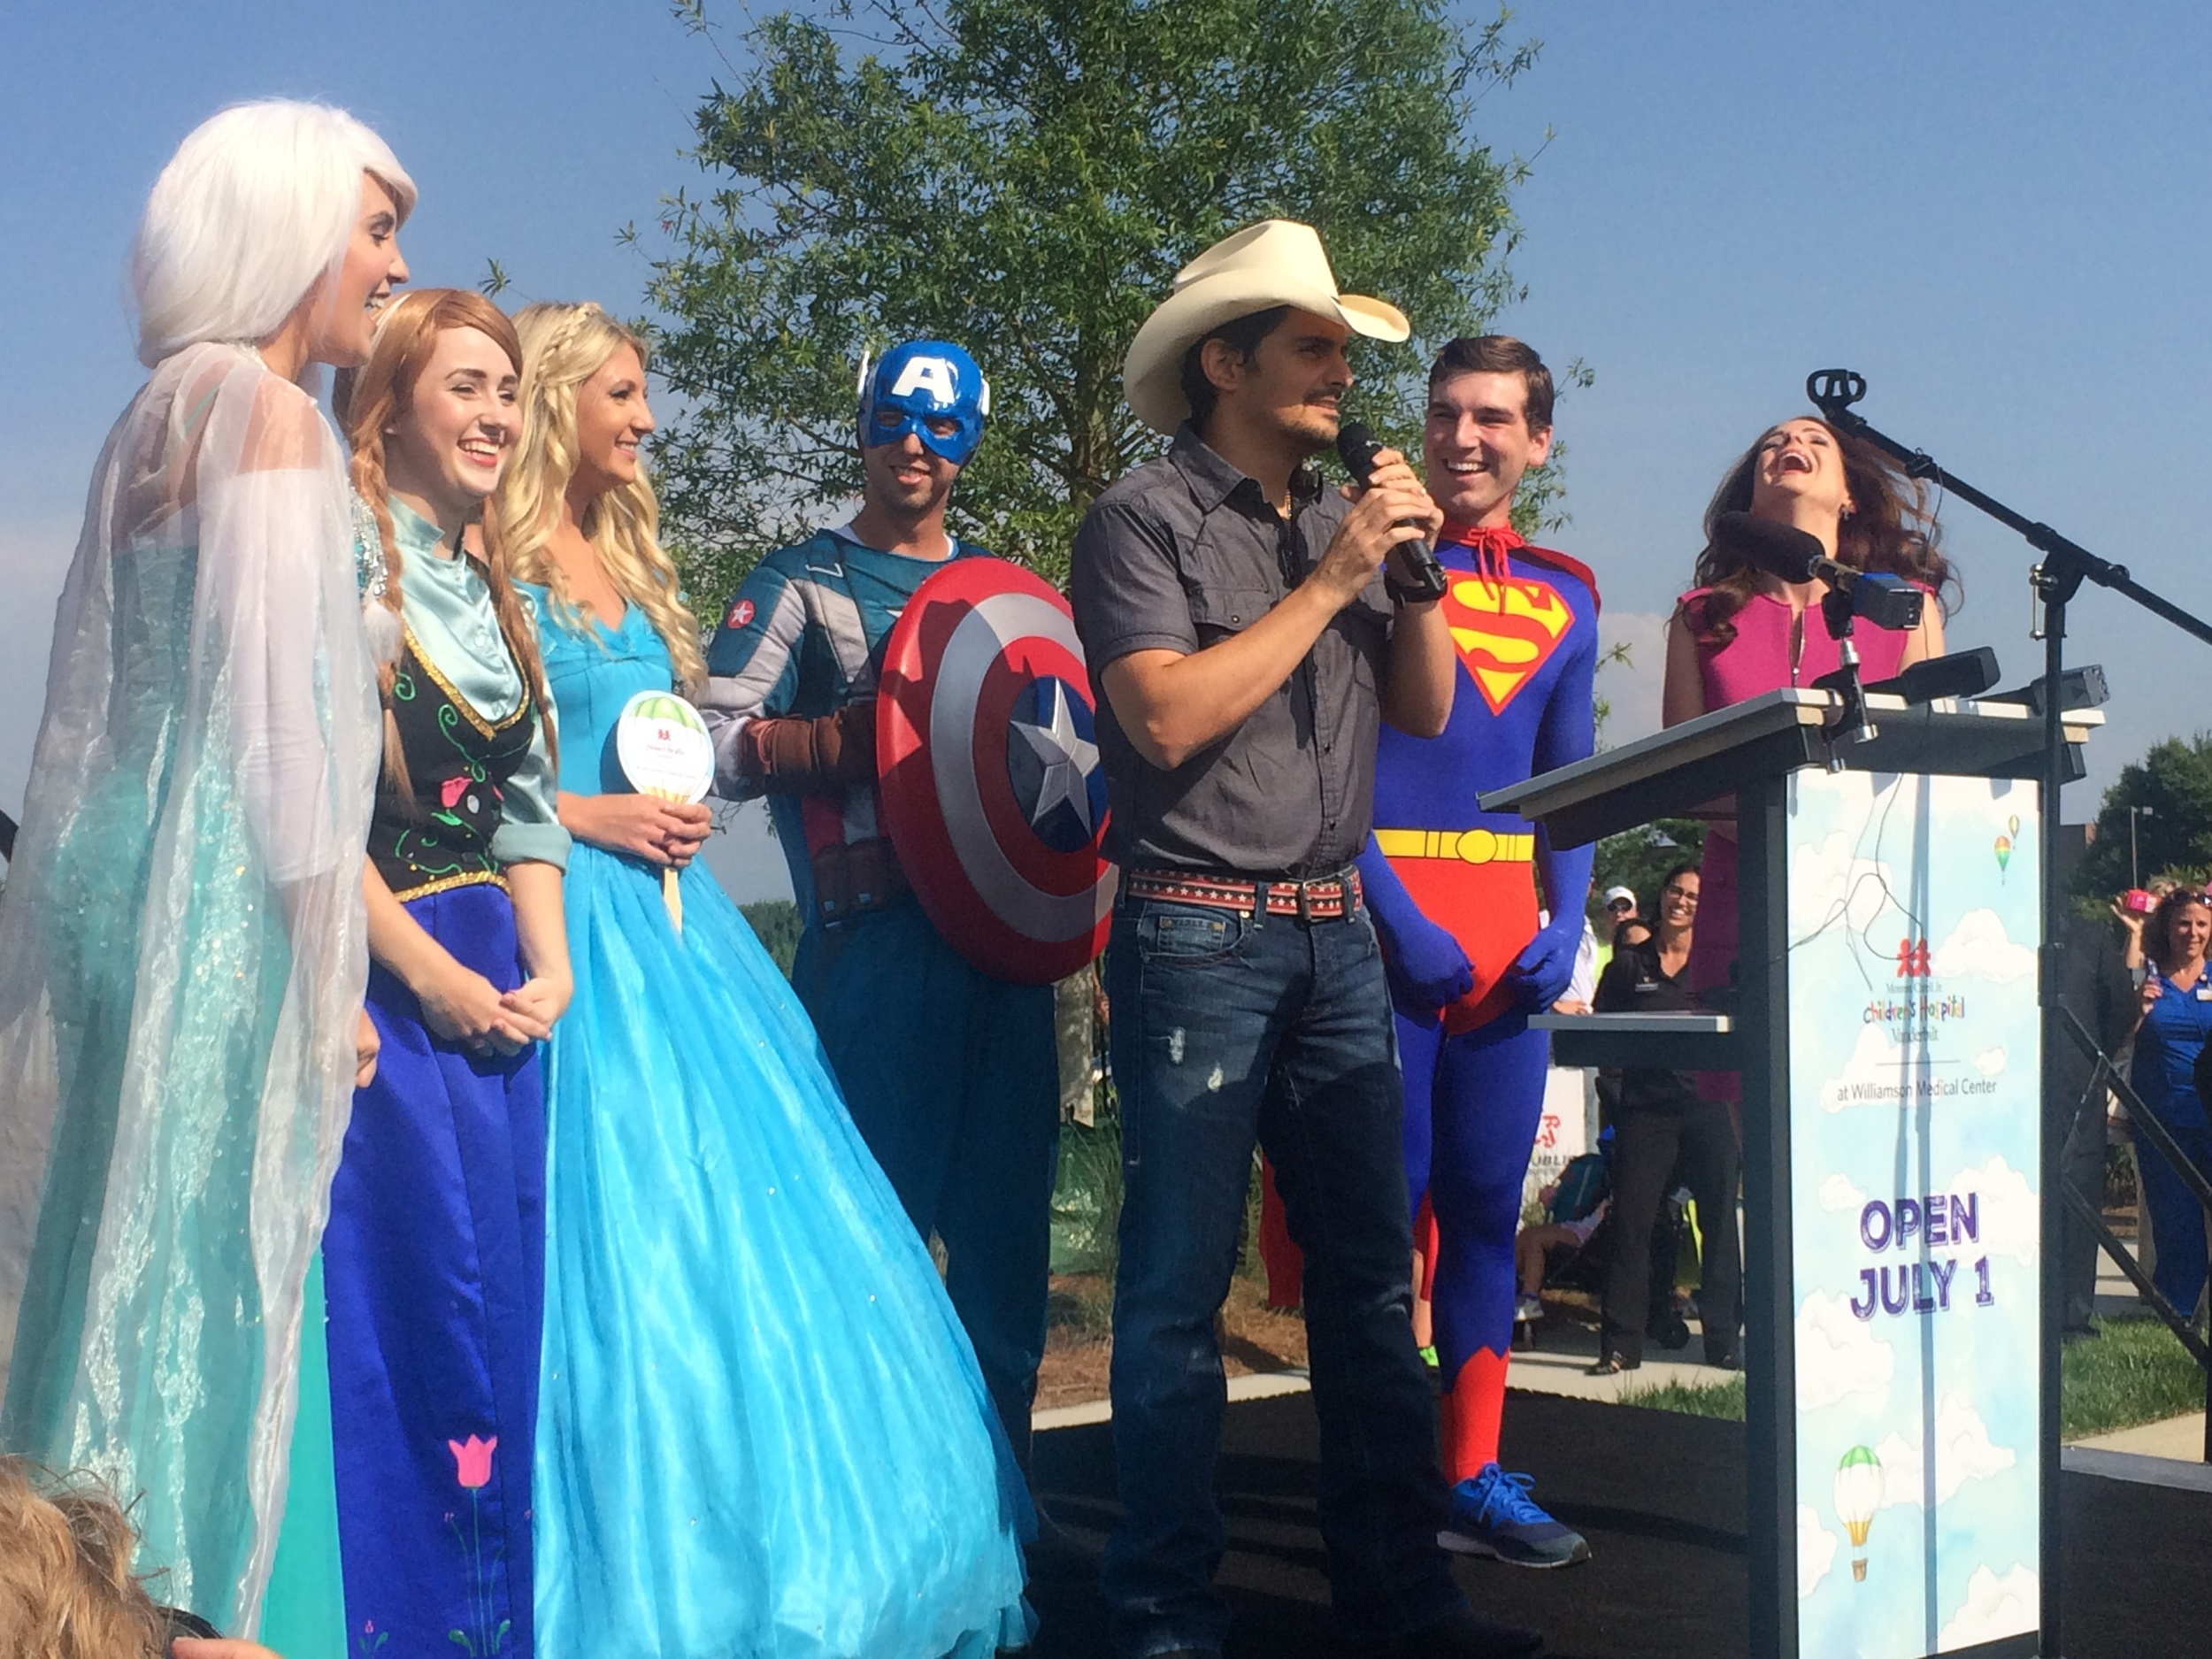 Brad Paisley, campaign honorary co-chair, speaks at a Close to Home Campaign event.